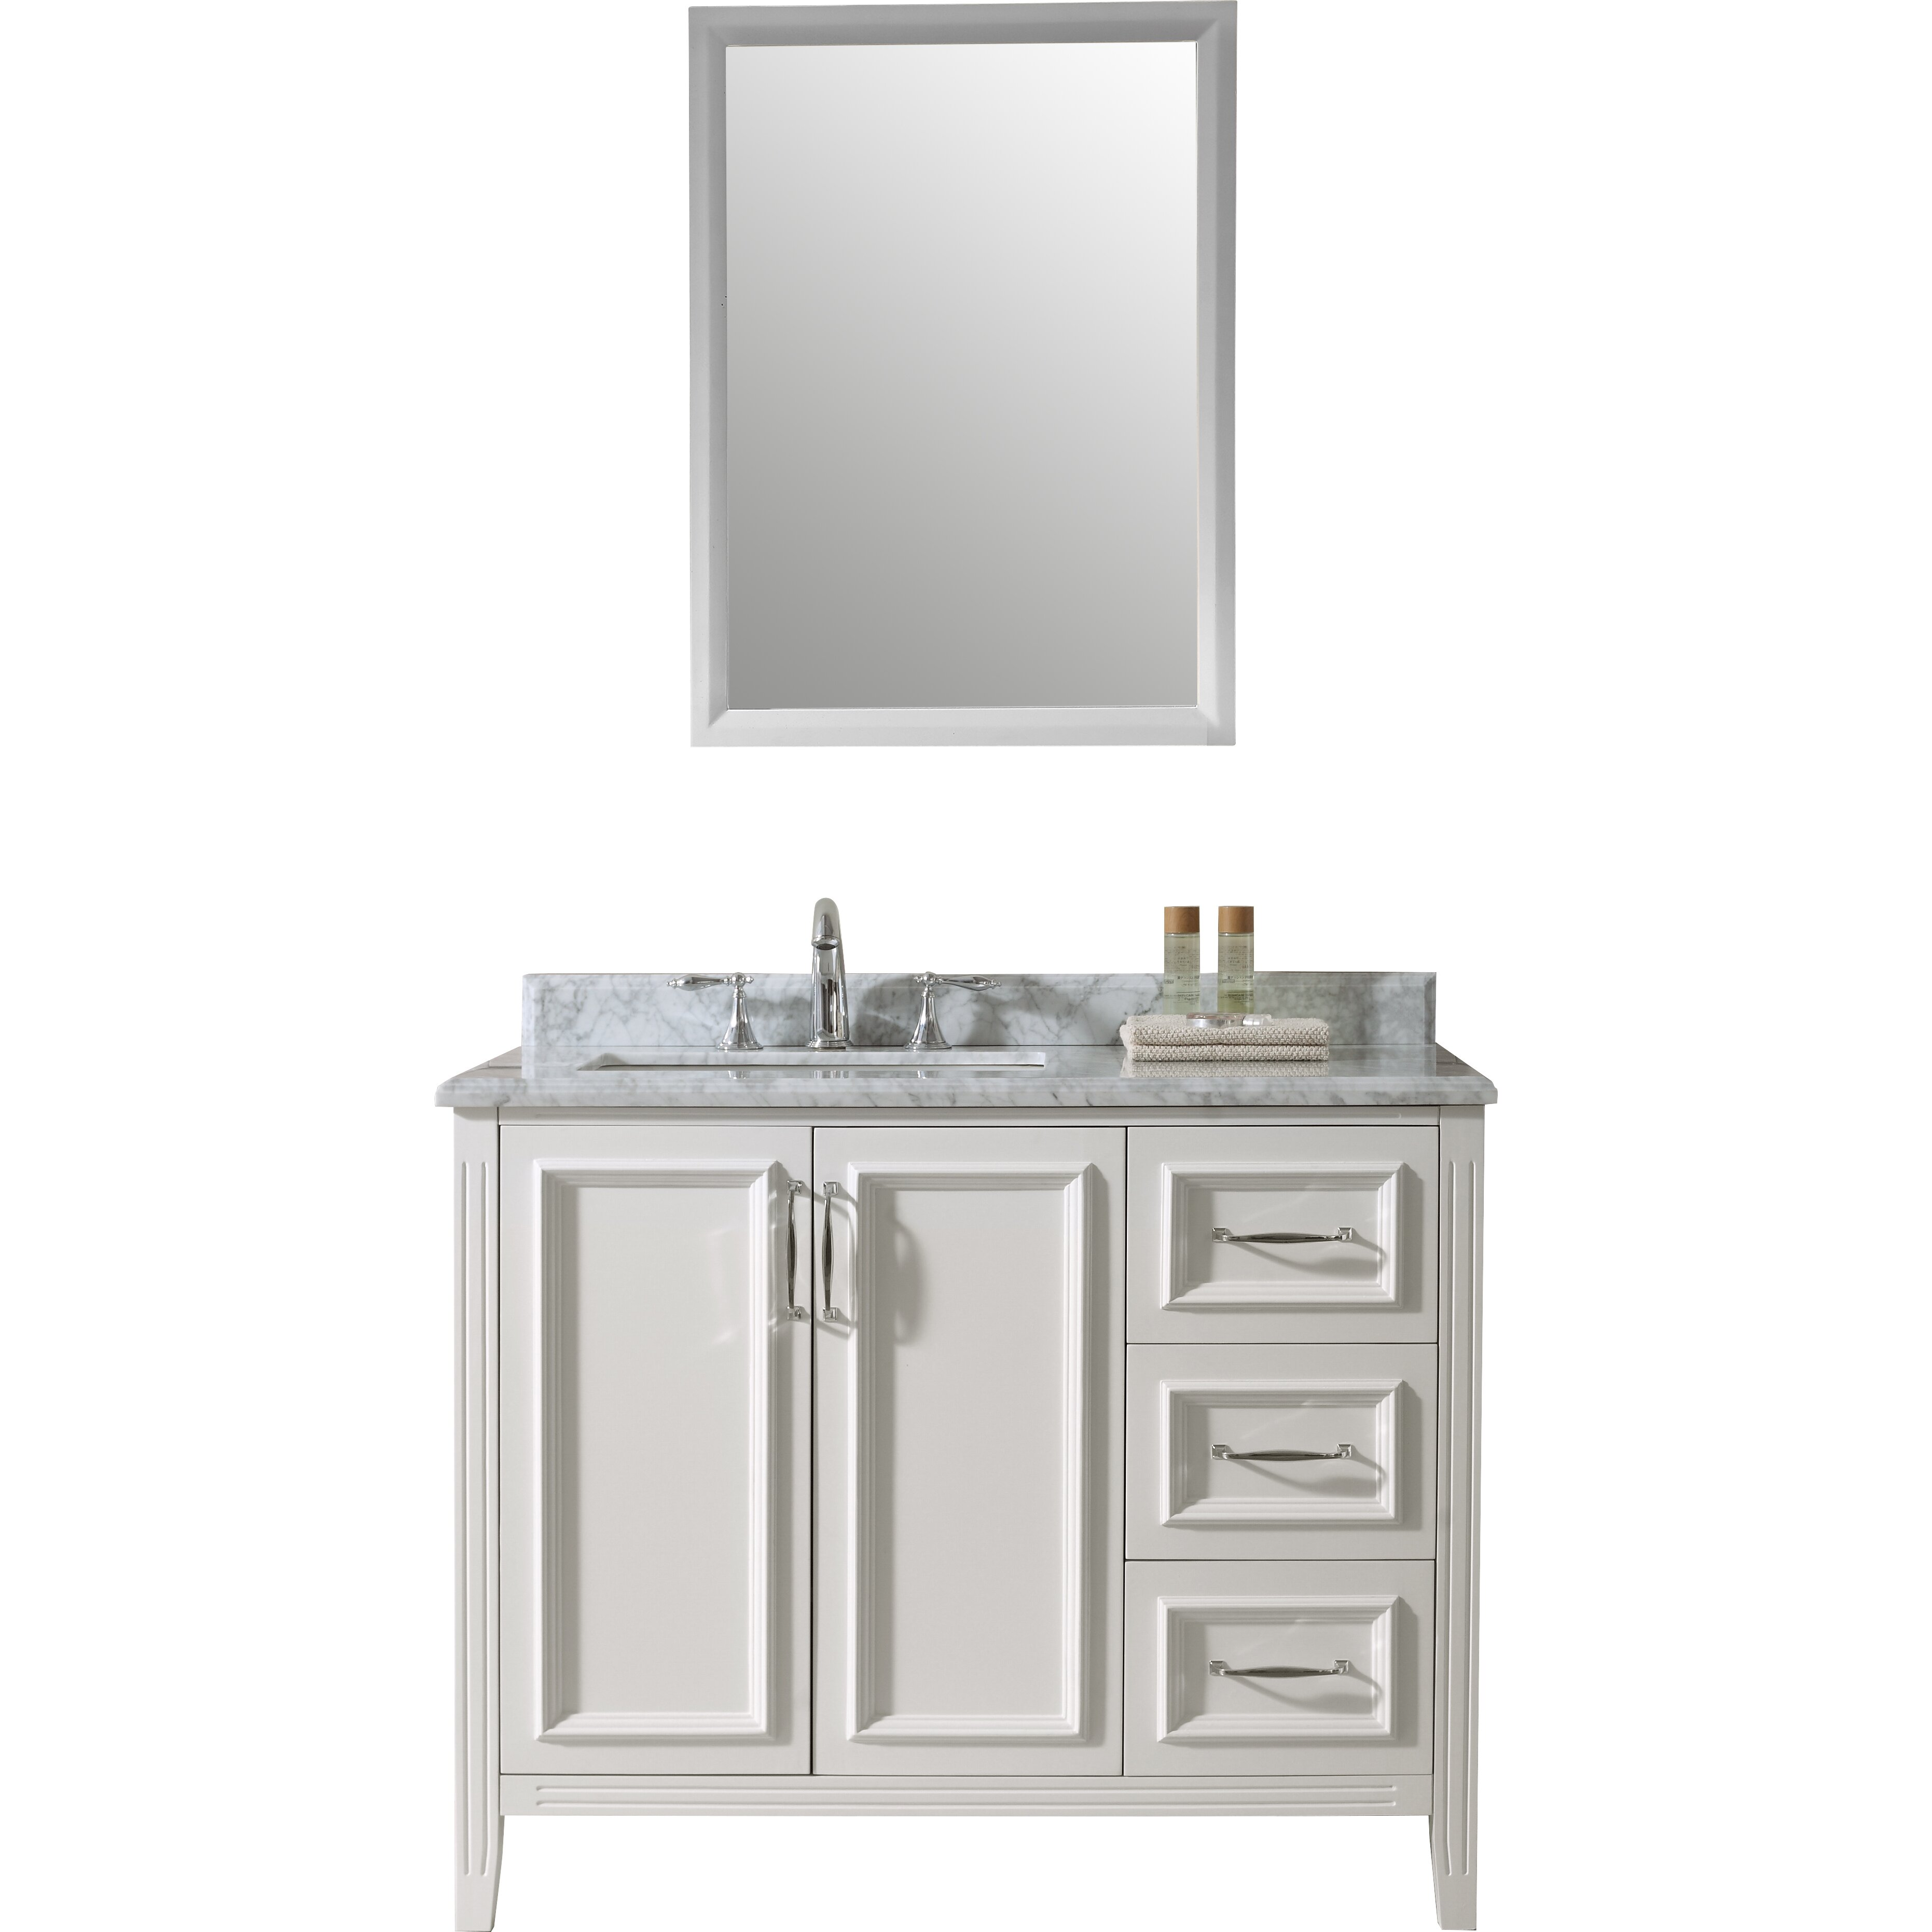 42 Bathroom Vanity Ari Kitchen Bath Jude 42 Single Bathroom Vanity Set Reviews